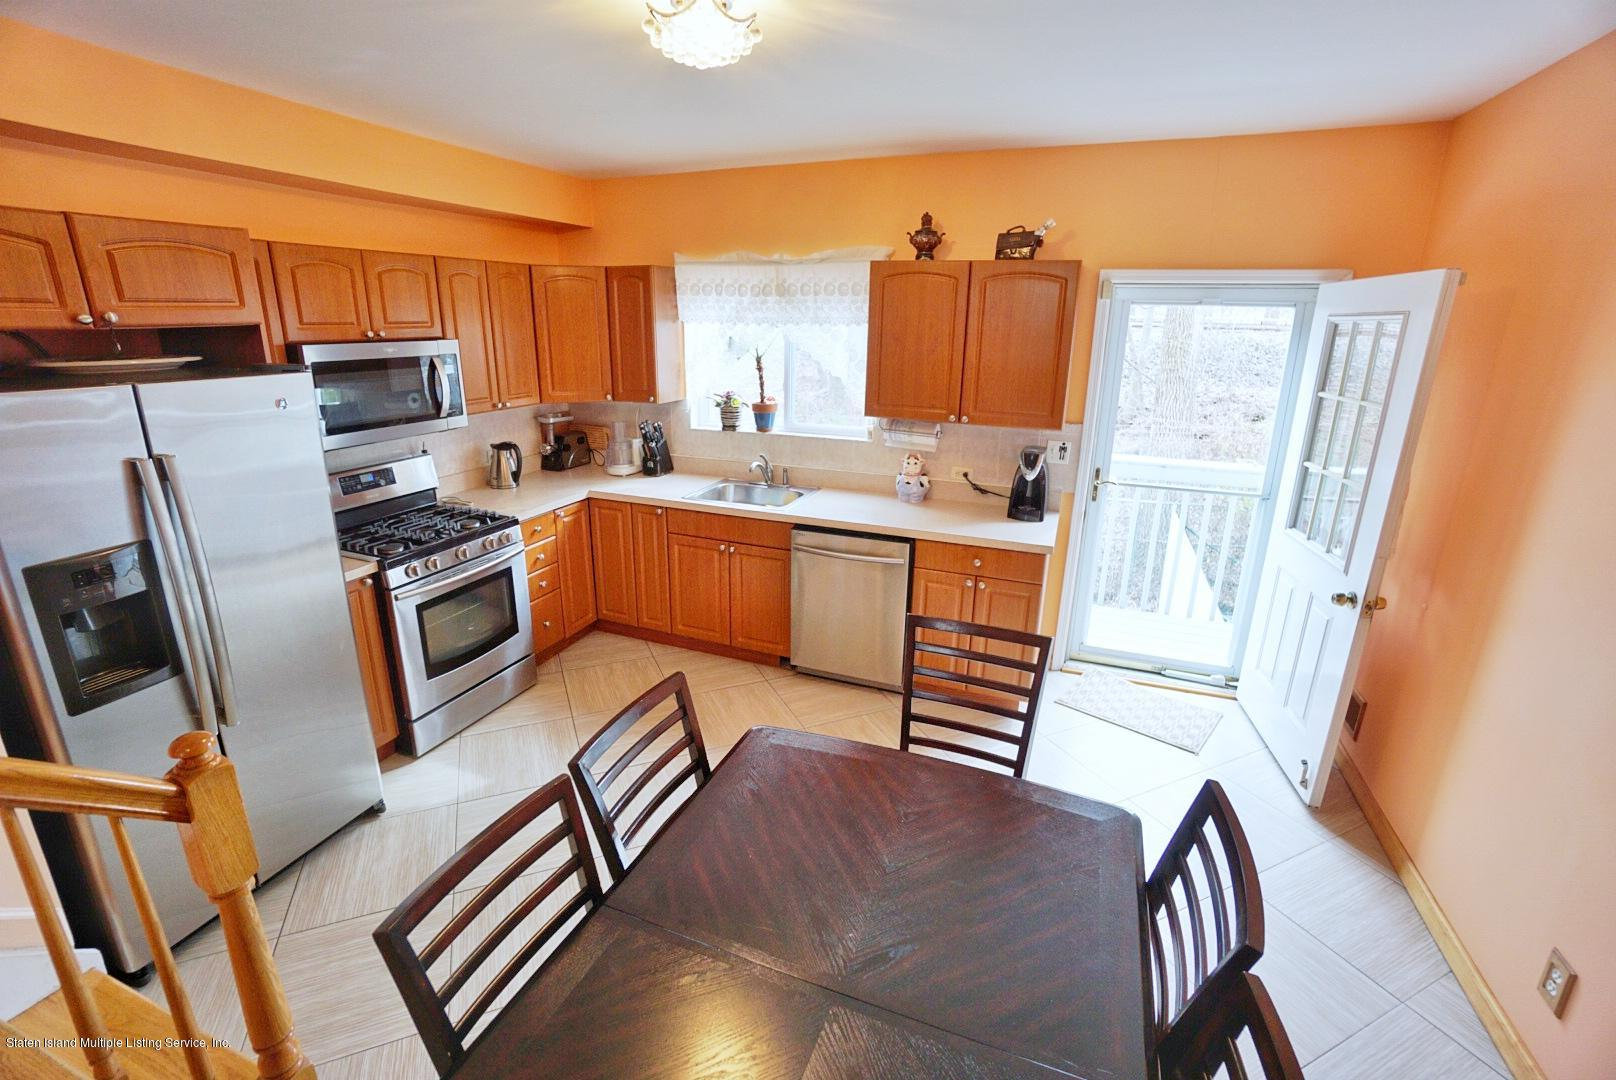 Single Family - Attached 30 Cranberry Court  Staten Island, NY 10309, MLS-1135421-11